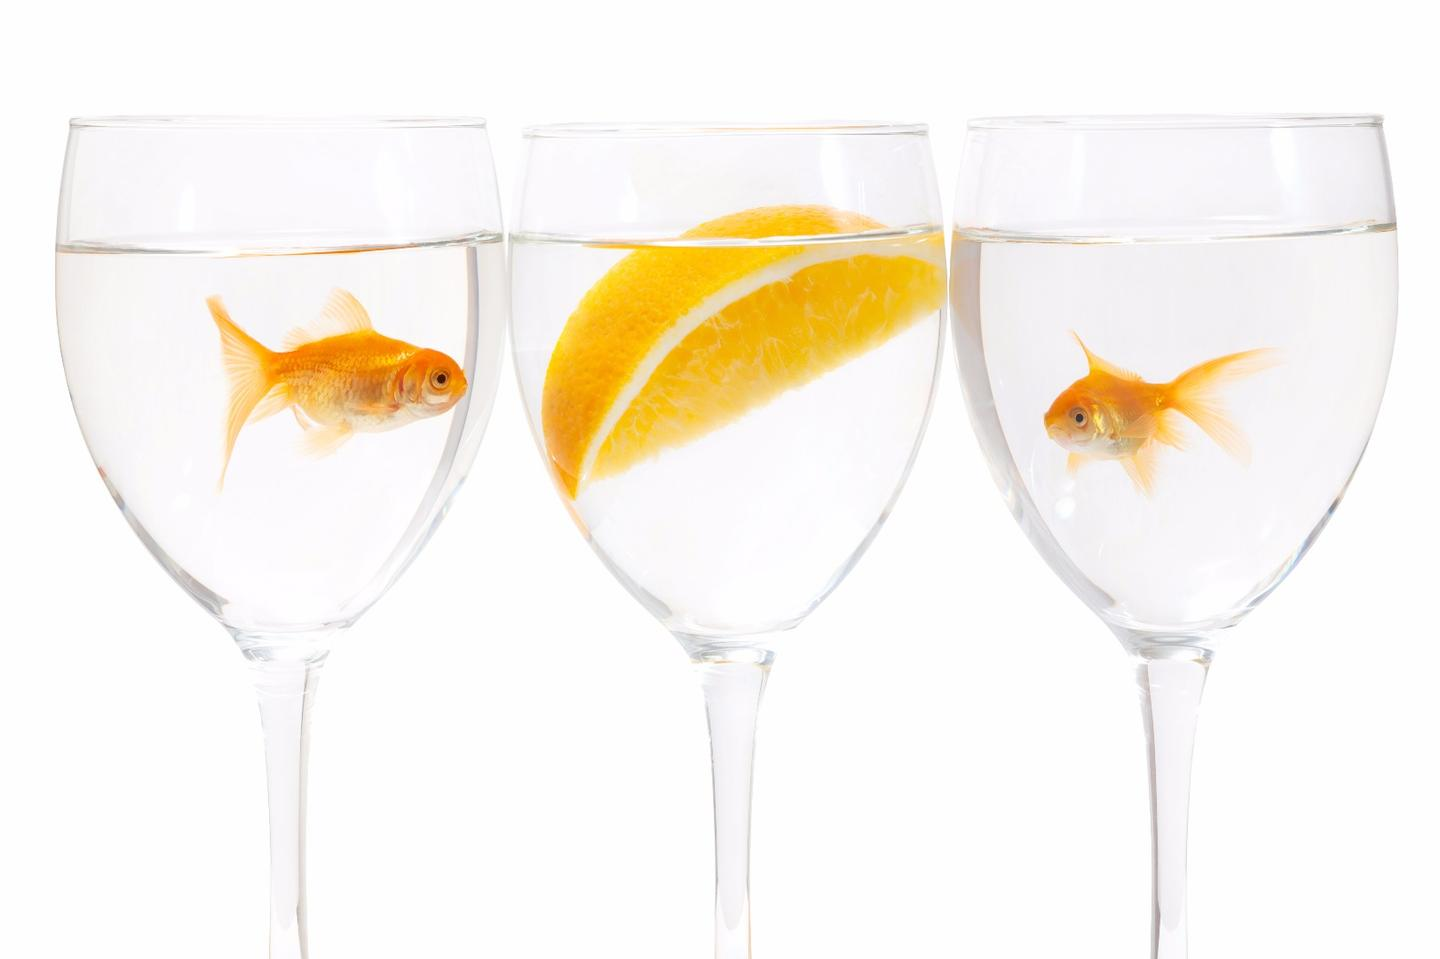 European researchers have discovered how a goldfish, and its cousin the crucian carp, create their own alcohol to help them survive the winter